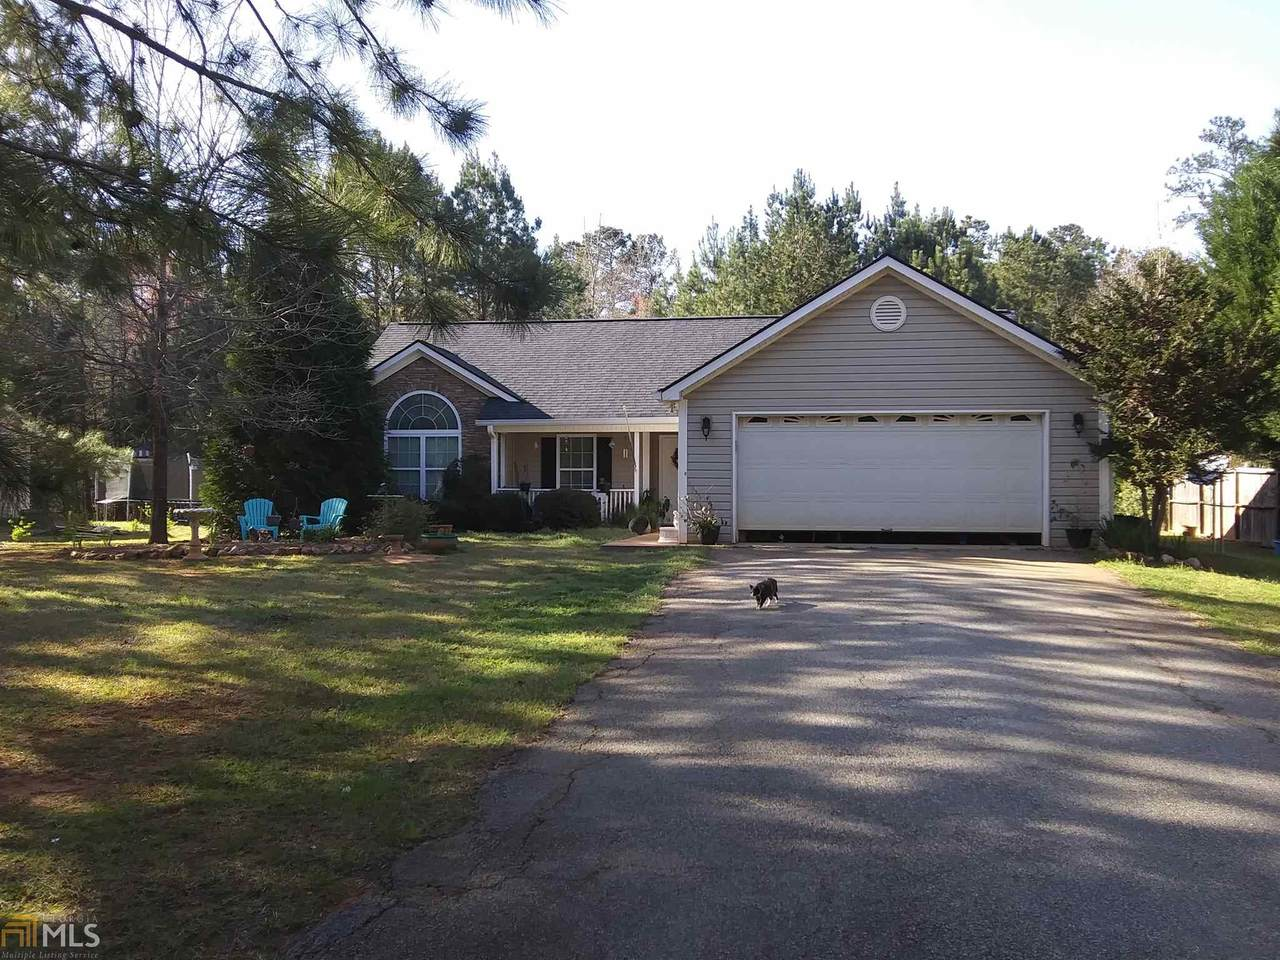 221 Winding River Rd - Photo 1